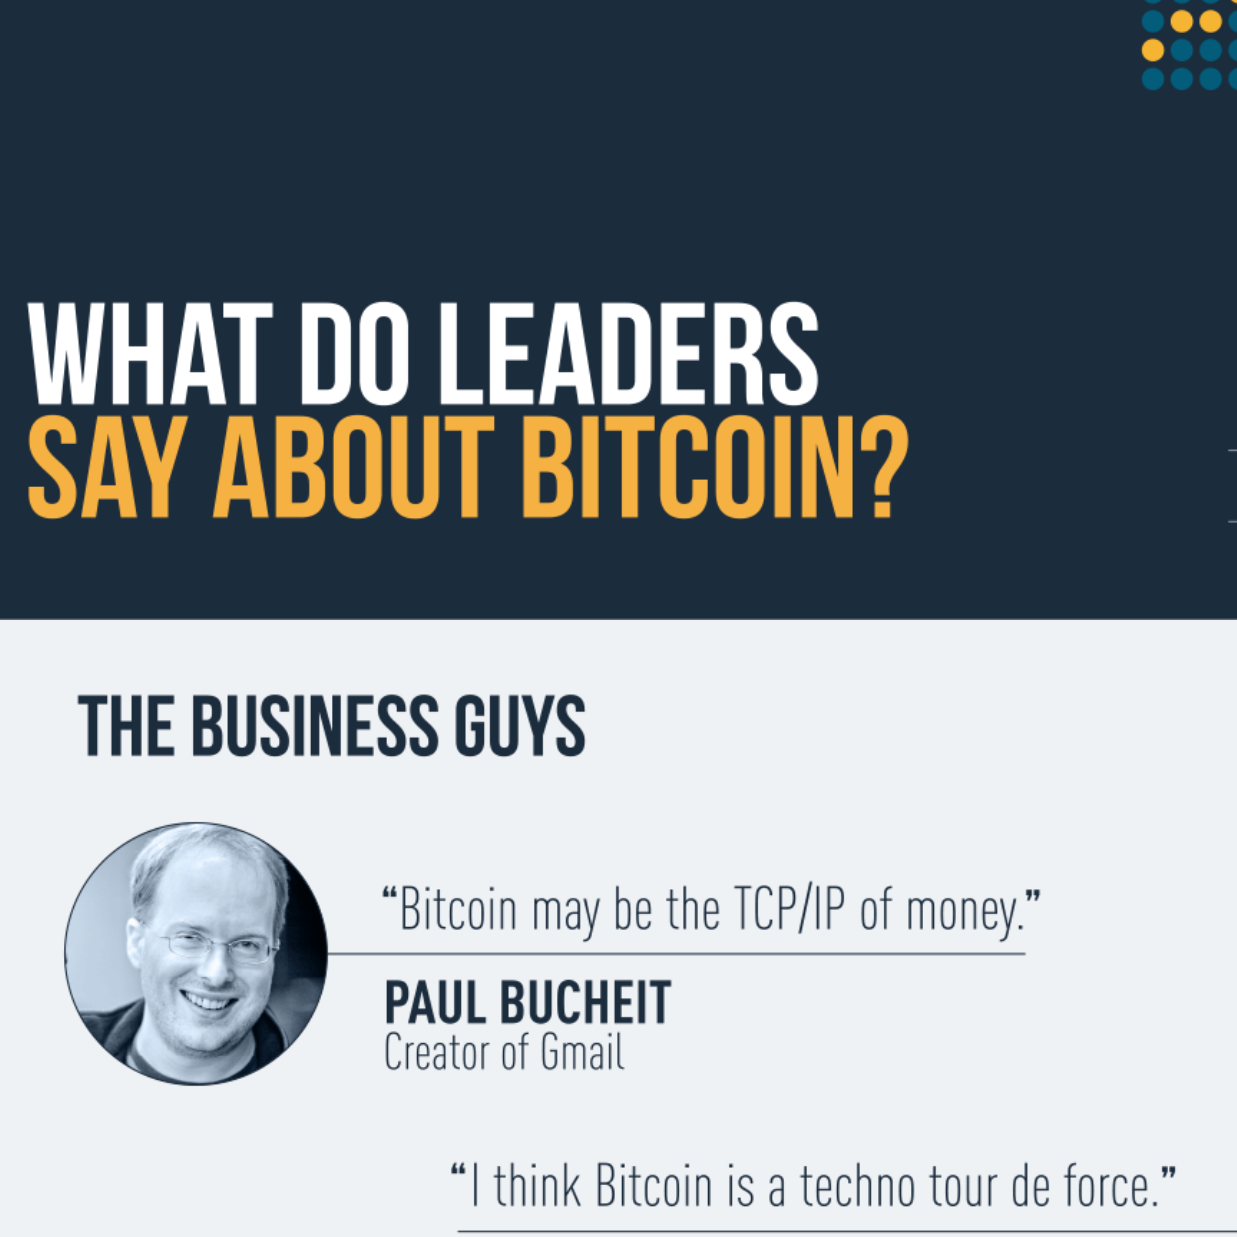 What leaders say about Bitcoin